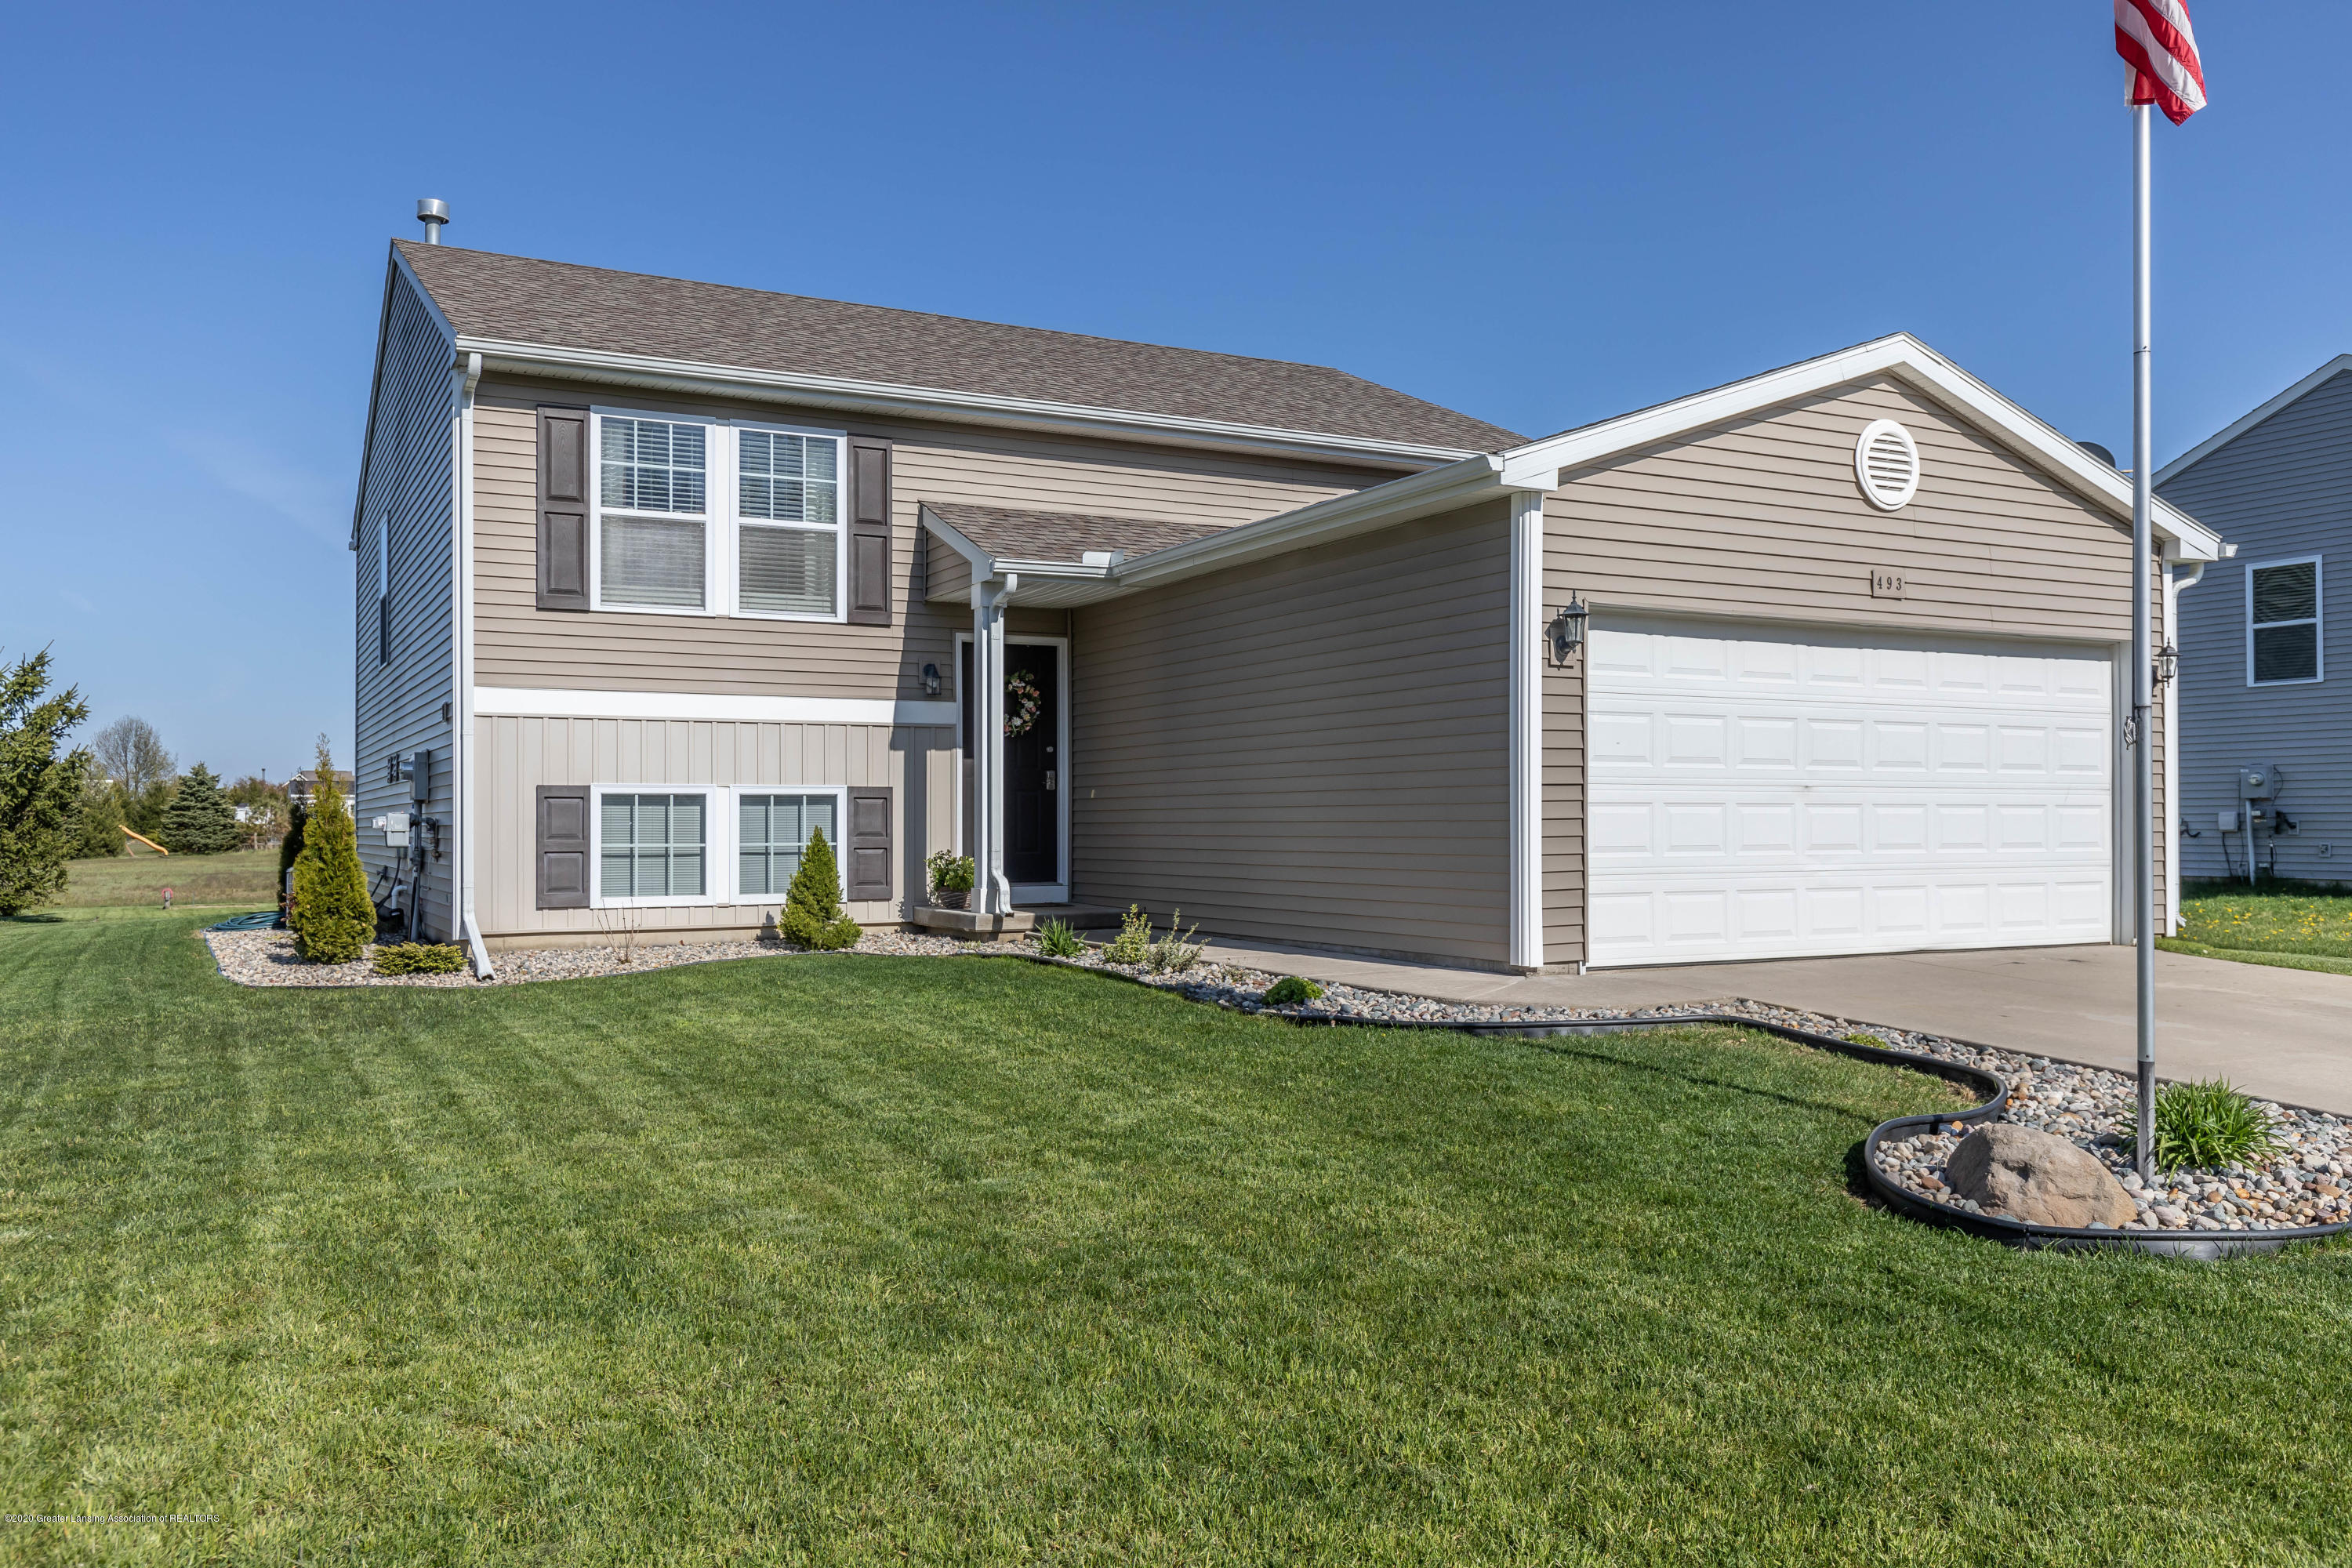 493 Blue Spruce Ln - bluefront3 (1 of 1) (1) - 1